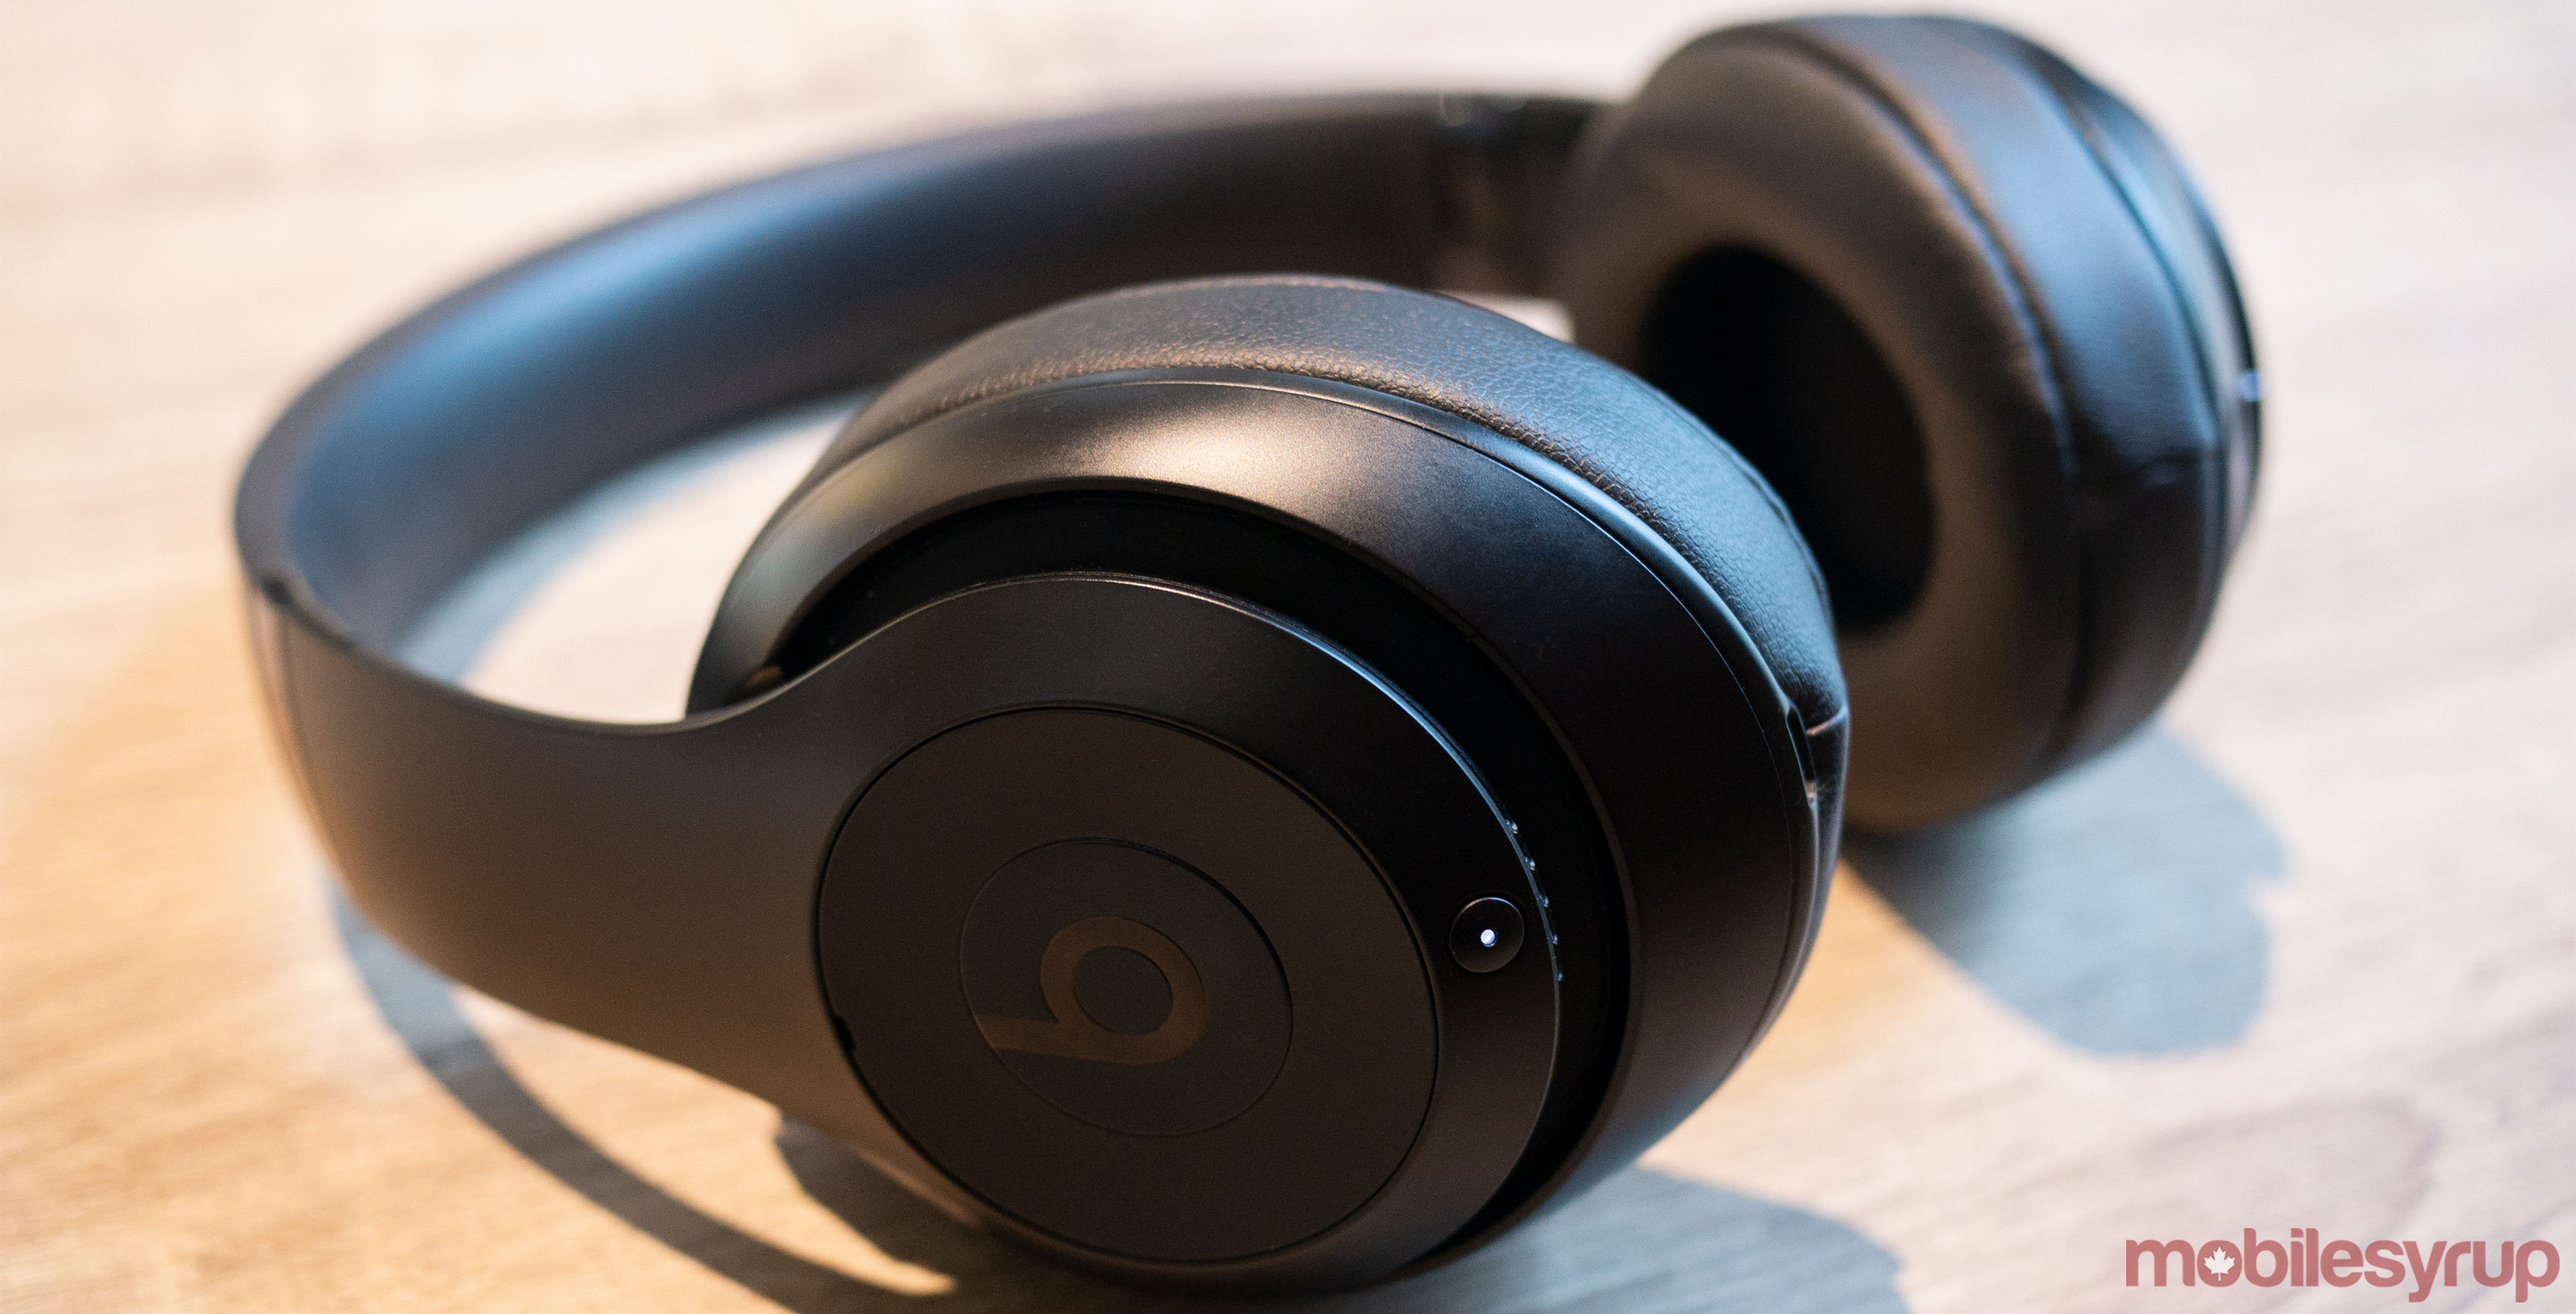 dd70f374101 Apple's over-ear headphones will launch in the second half of 2019 ...